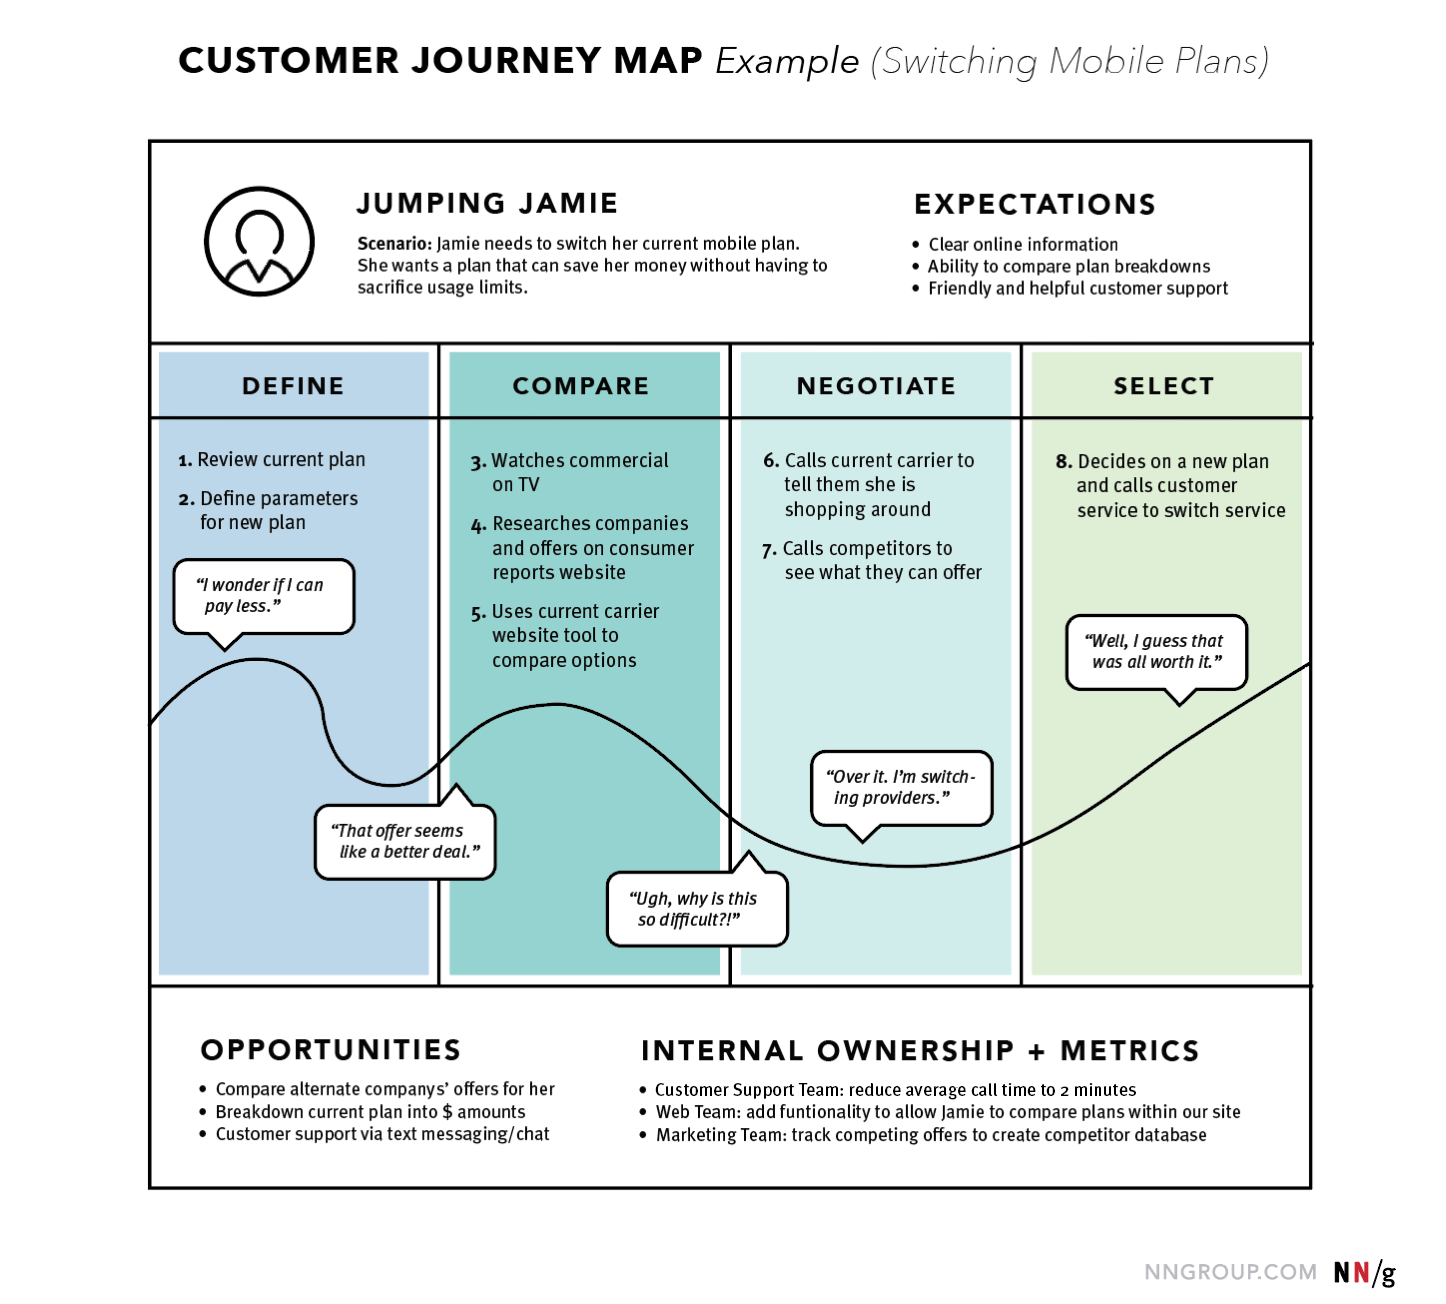 Customer Journey Map Example by Nielsen Norman Group